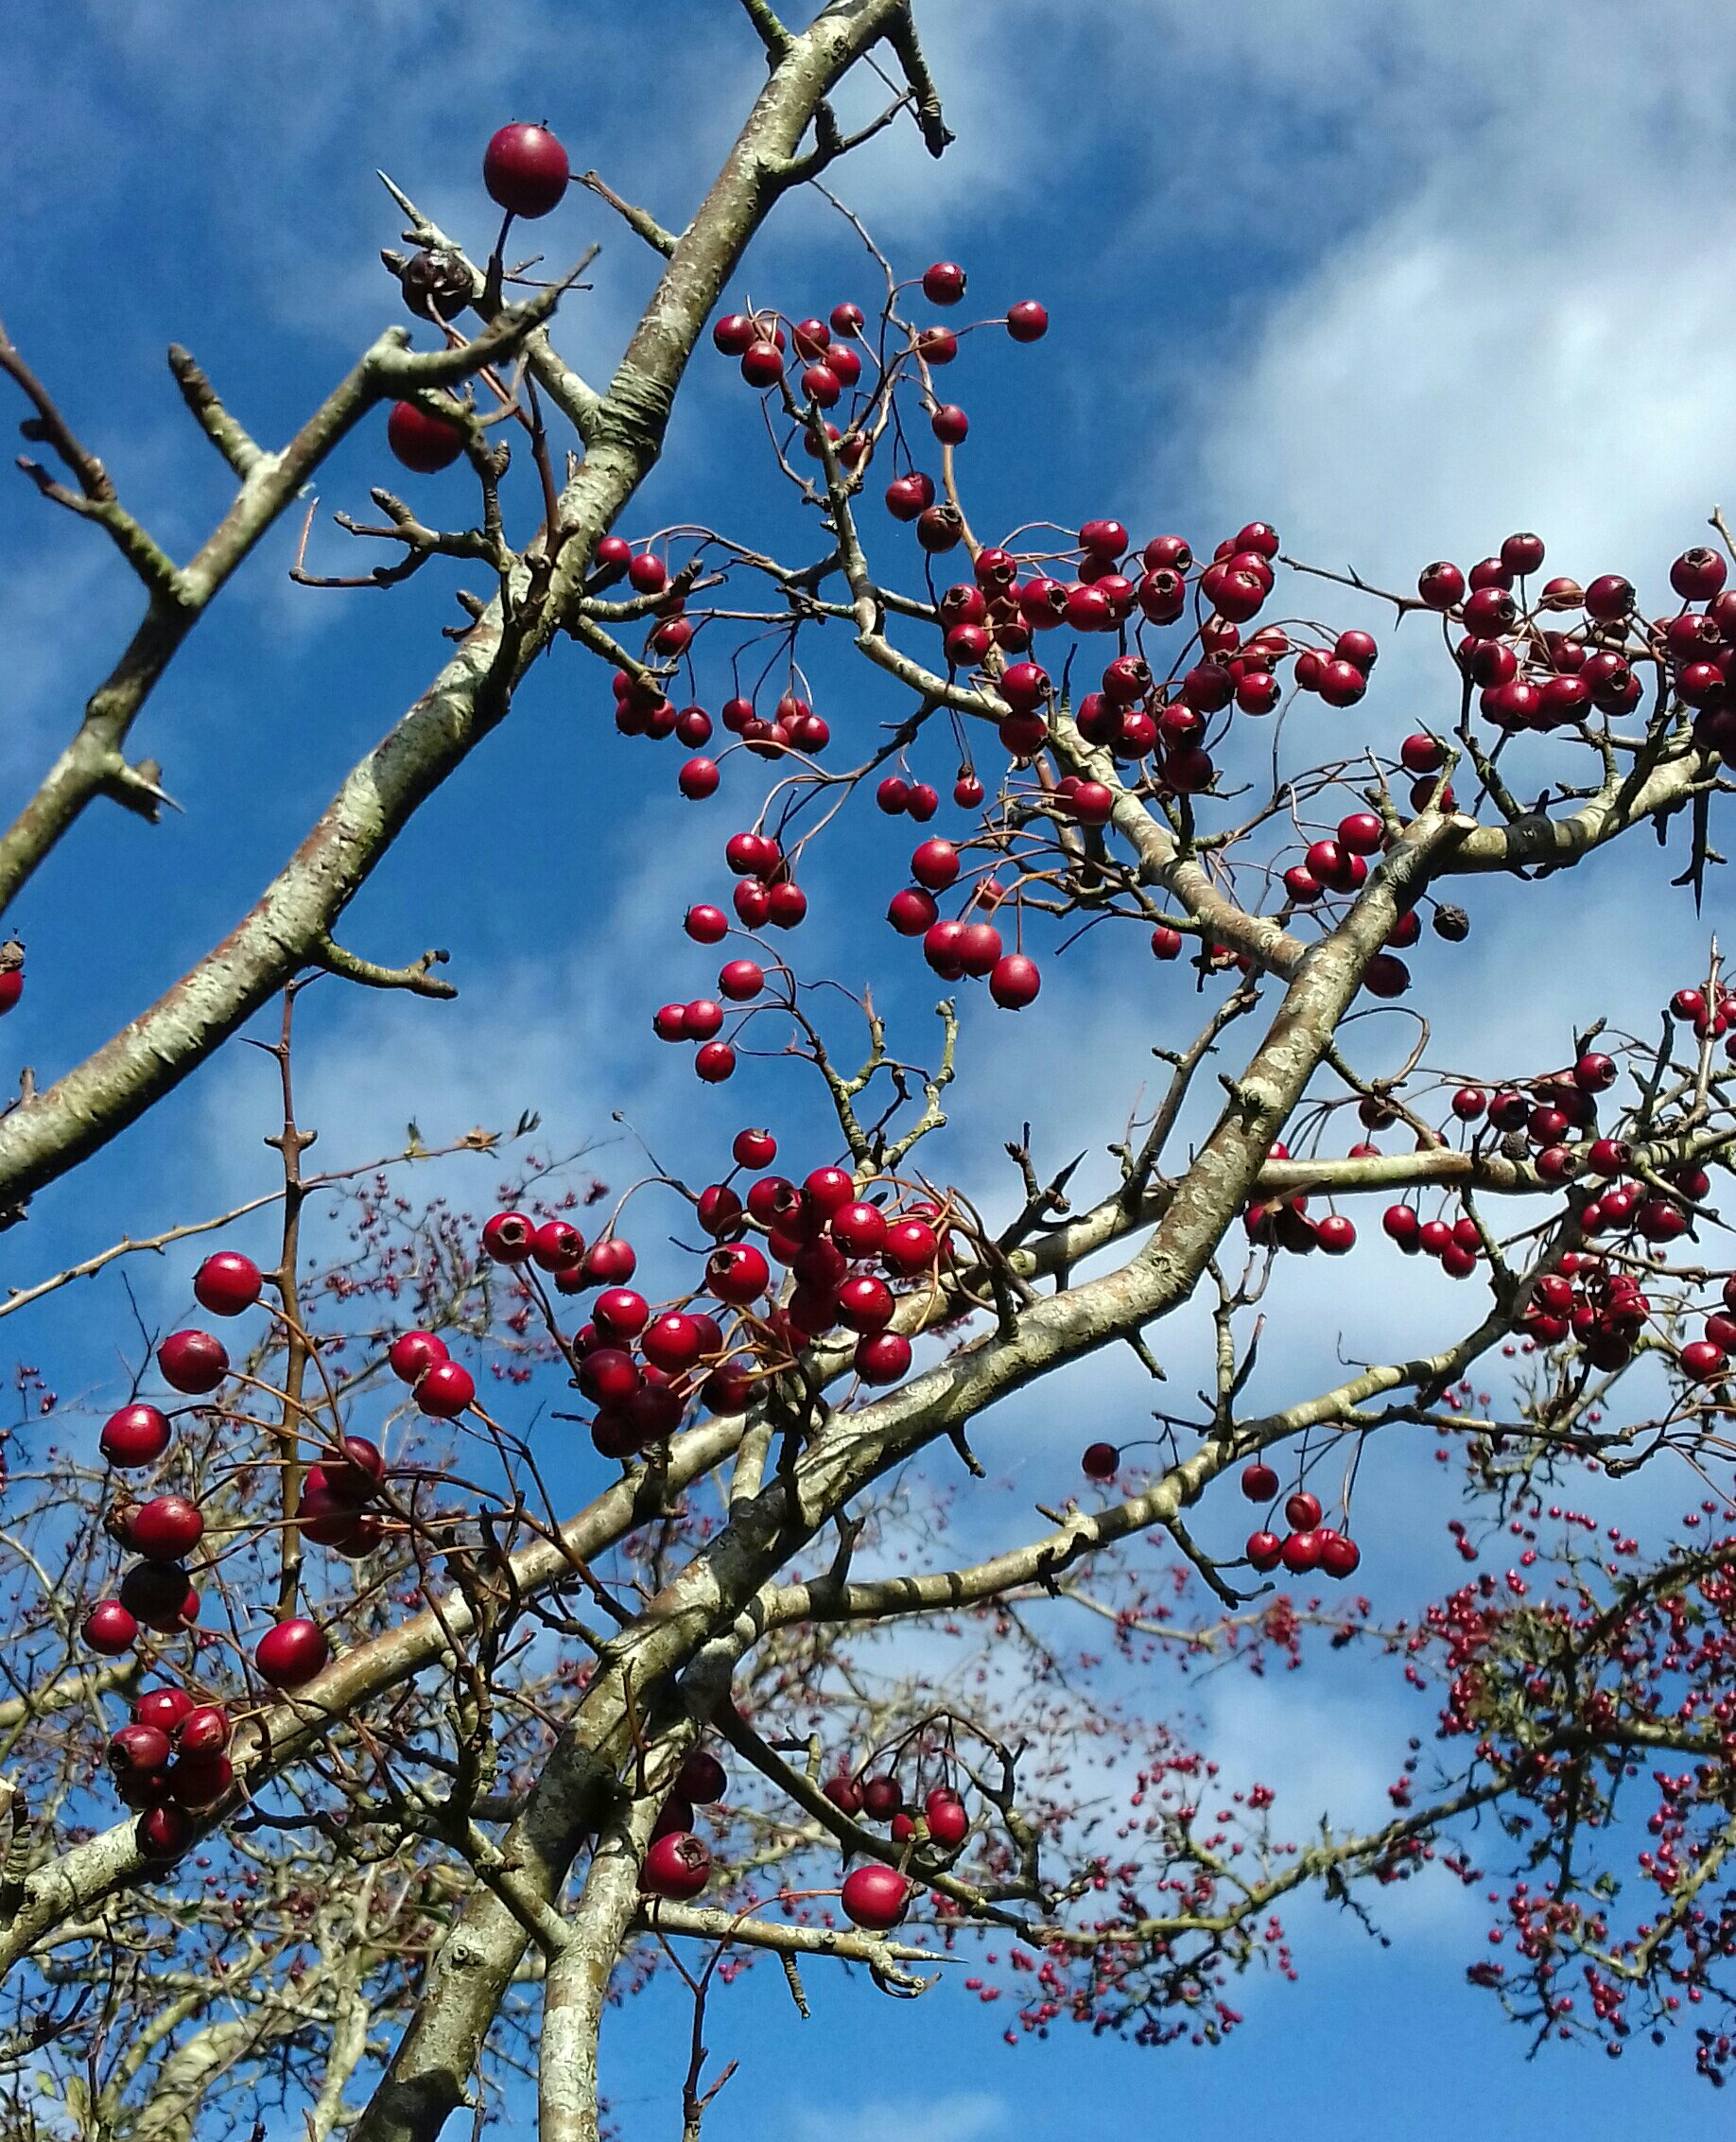 Close up photograph of bright red hawthorn berries on a bush against a blue sky